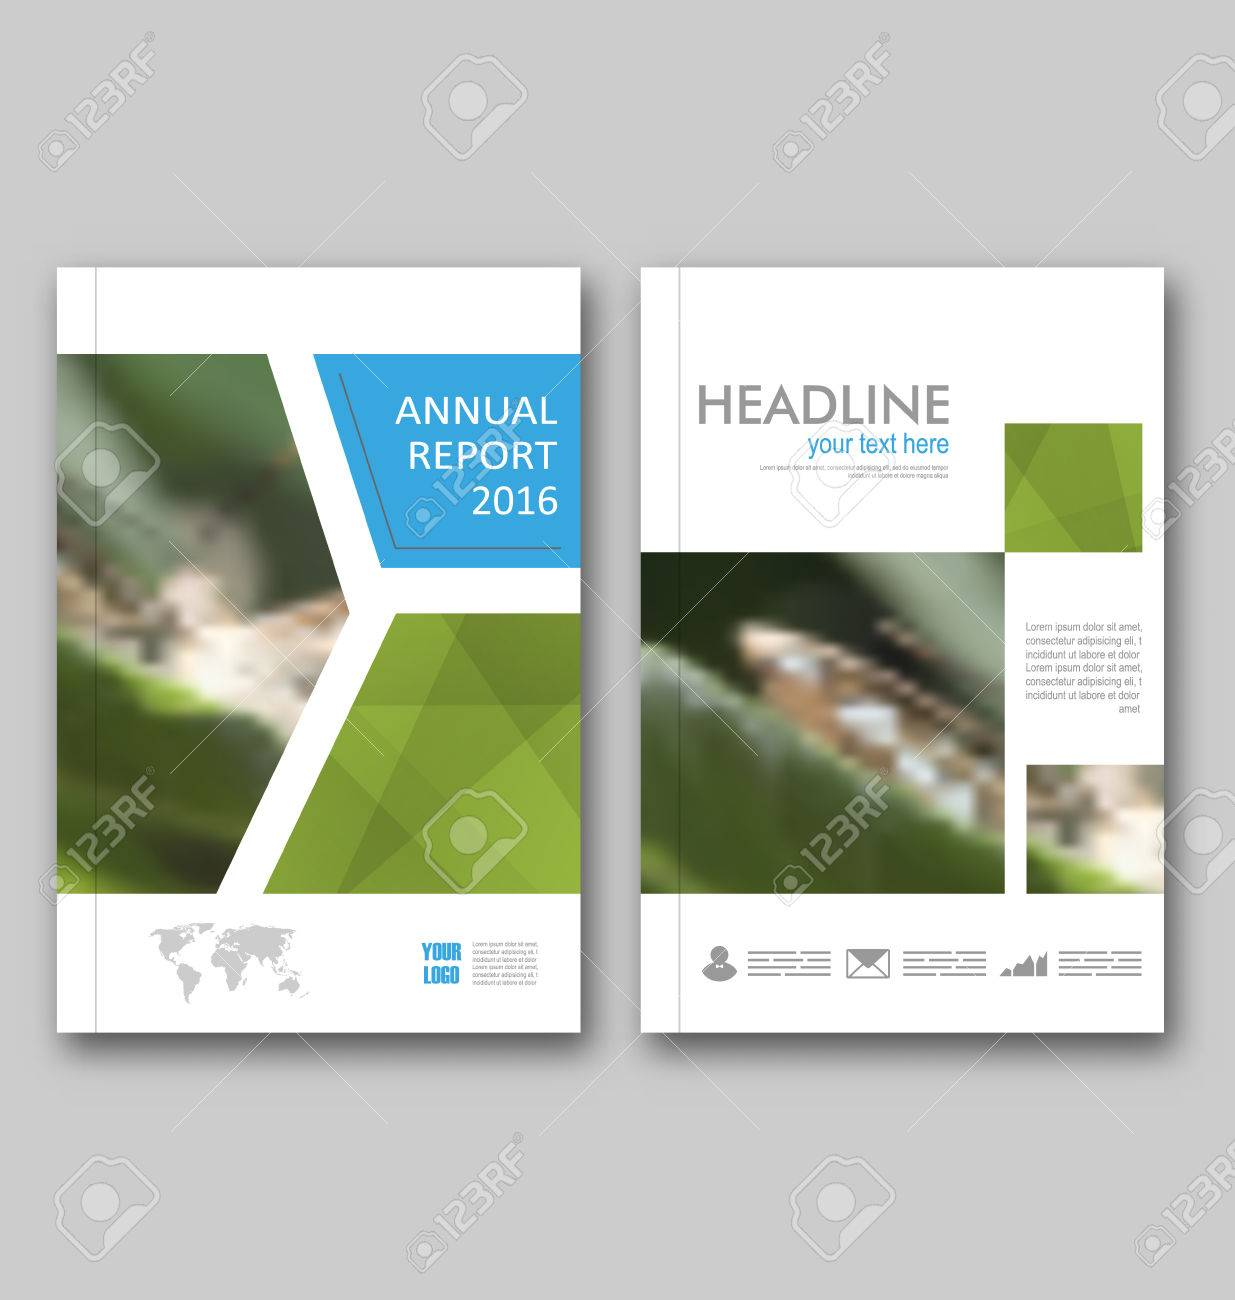 illustration brochure template layout cover design annual report